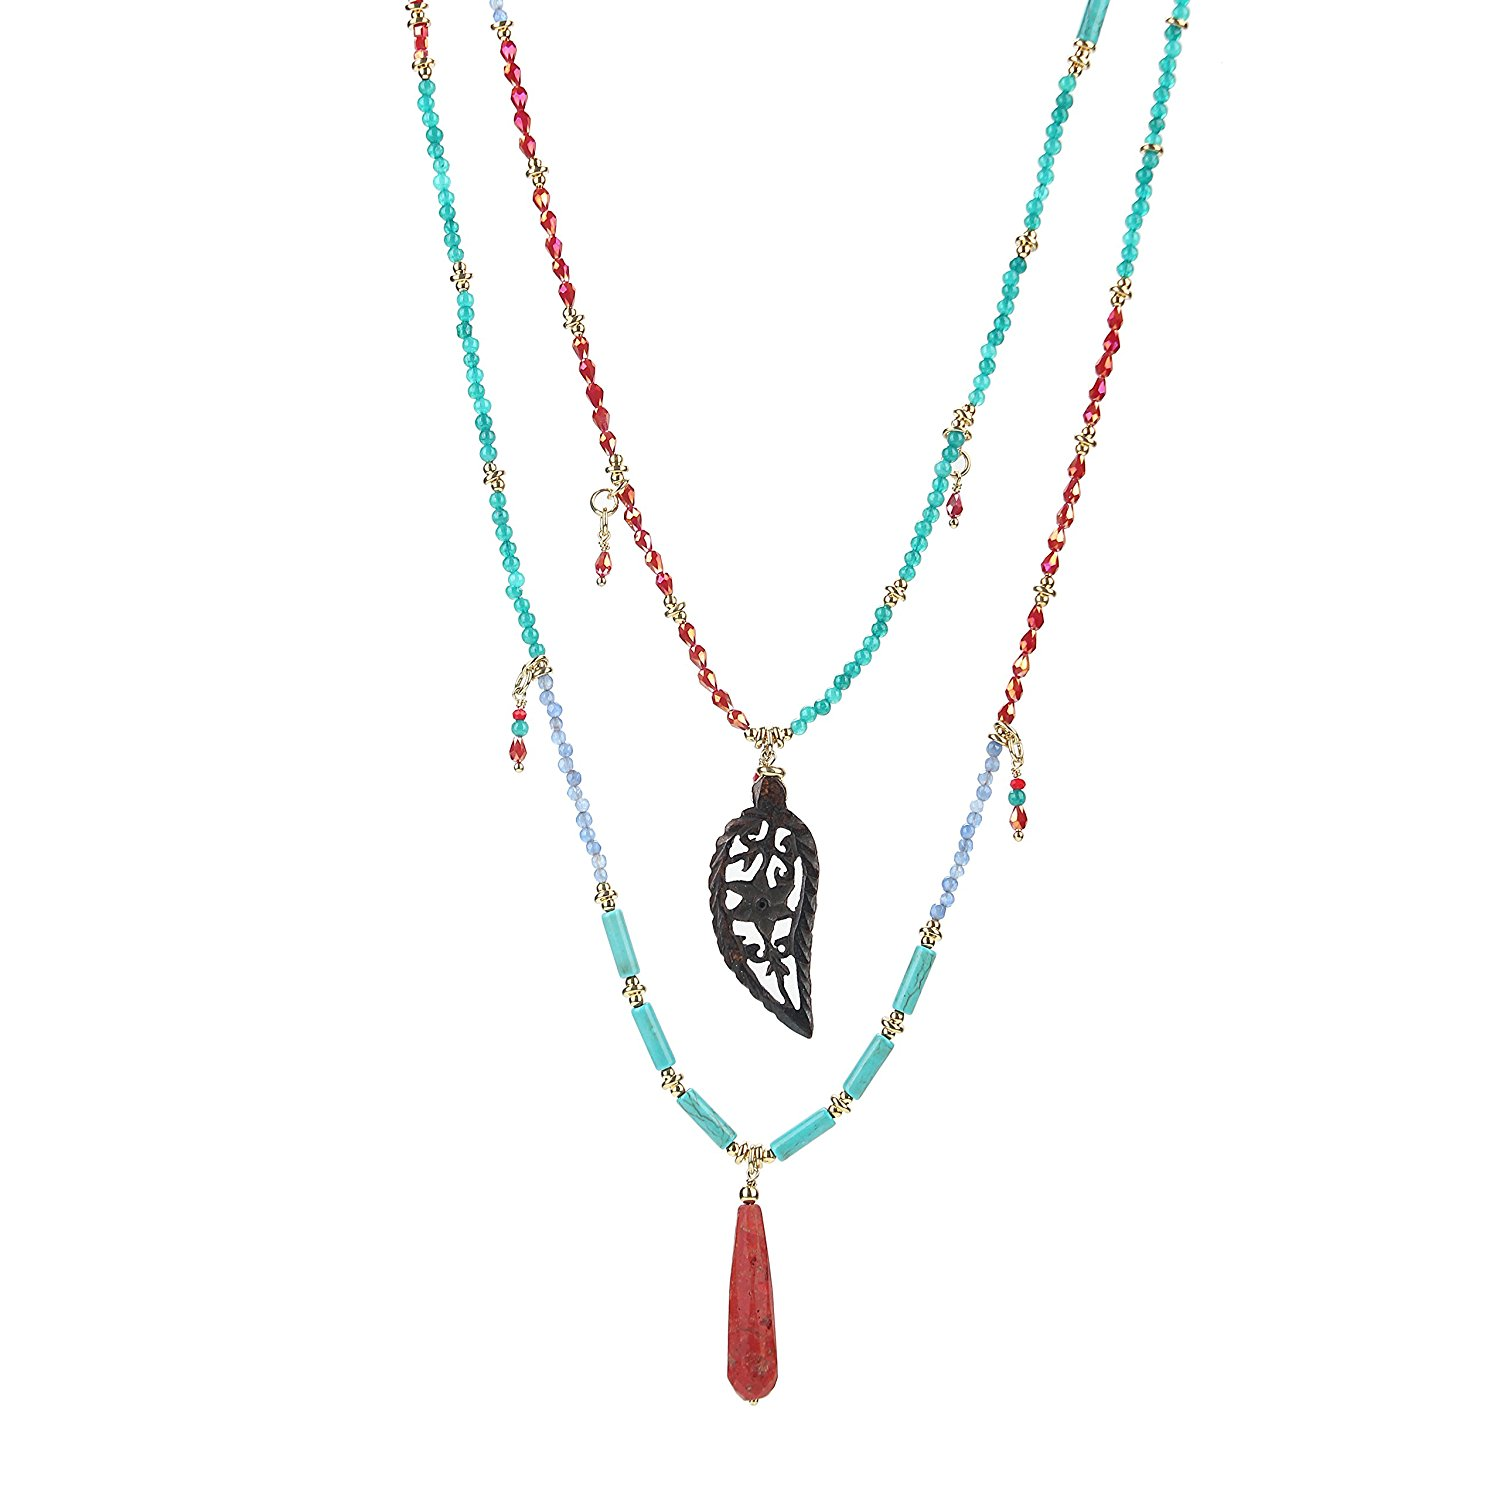 tom+alice Handmade Semi Gemstone Beads Necklace Two Strands Multipurpose Detachable Necklace for Women